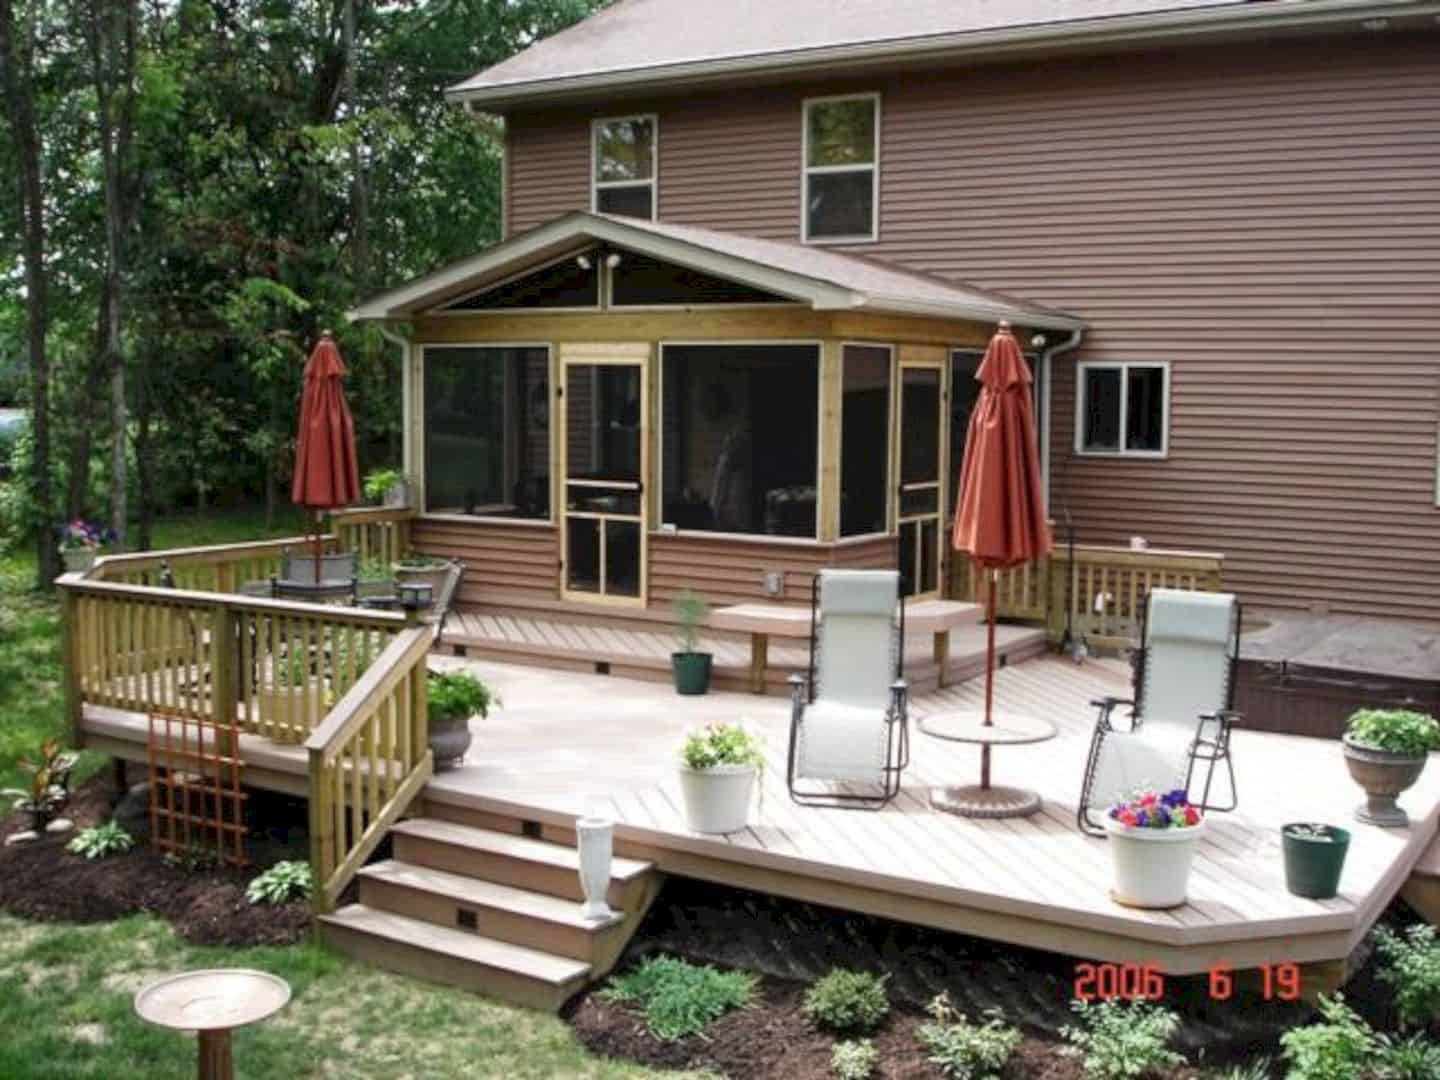 Best ideas about Screened In Patio . Save or Pin 8 Ways To Have More Appealing Screened Porch Deck Now.